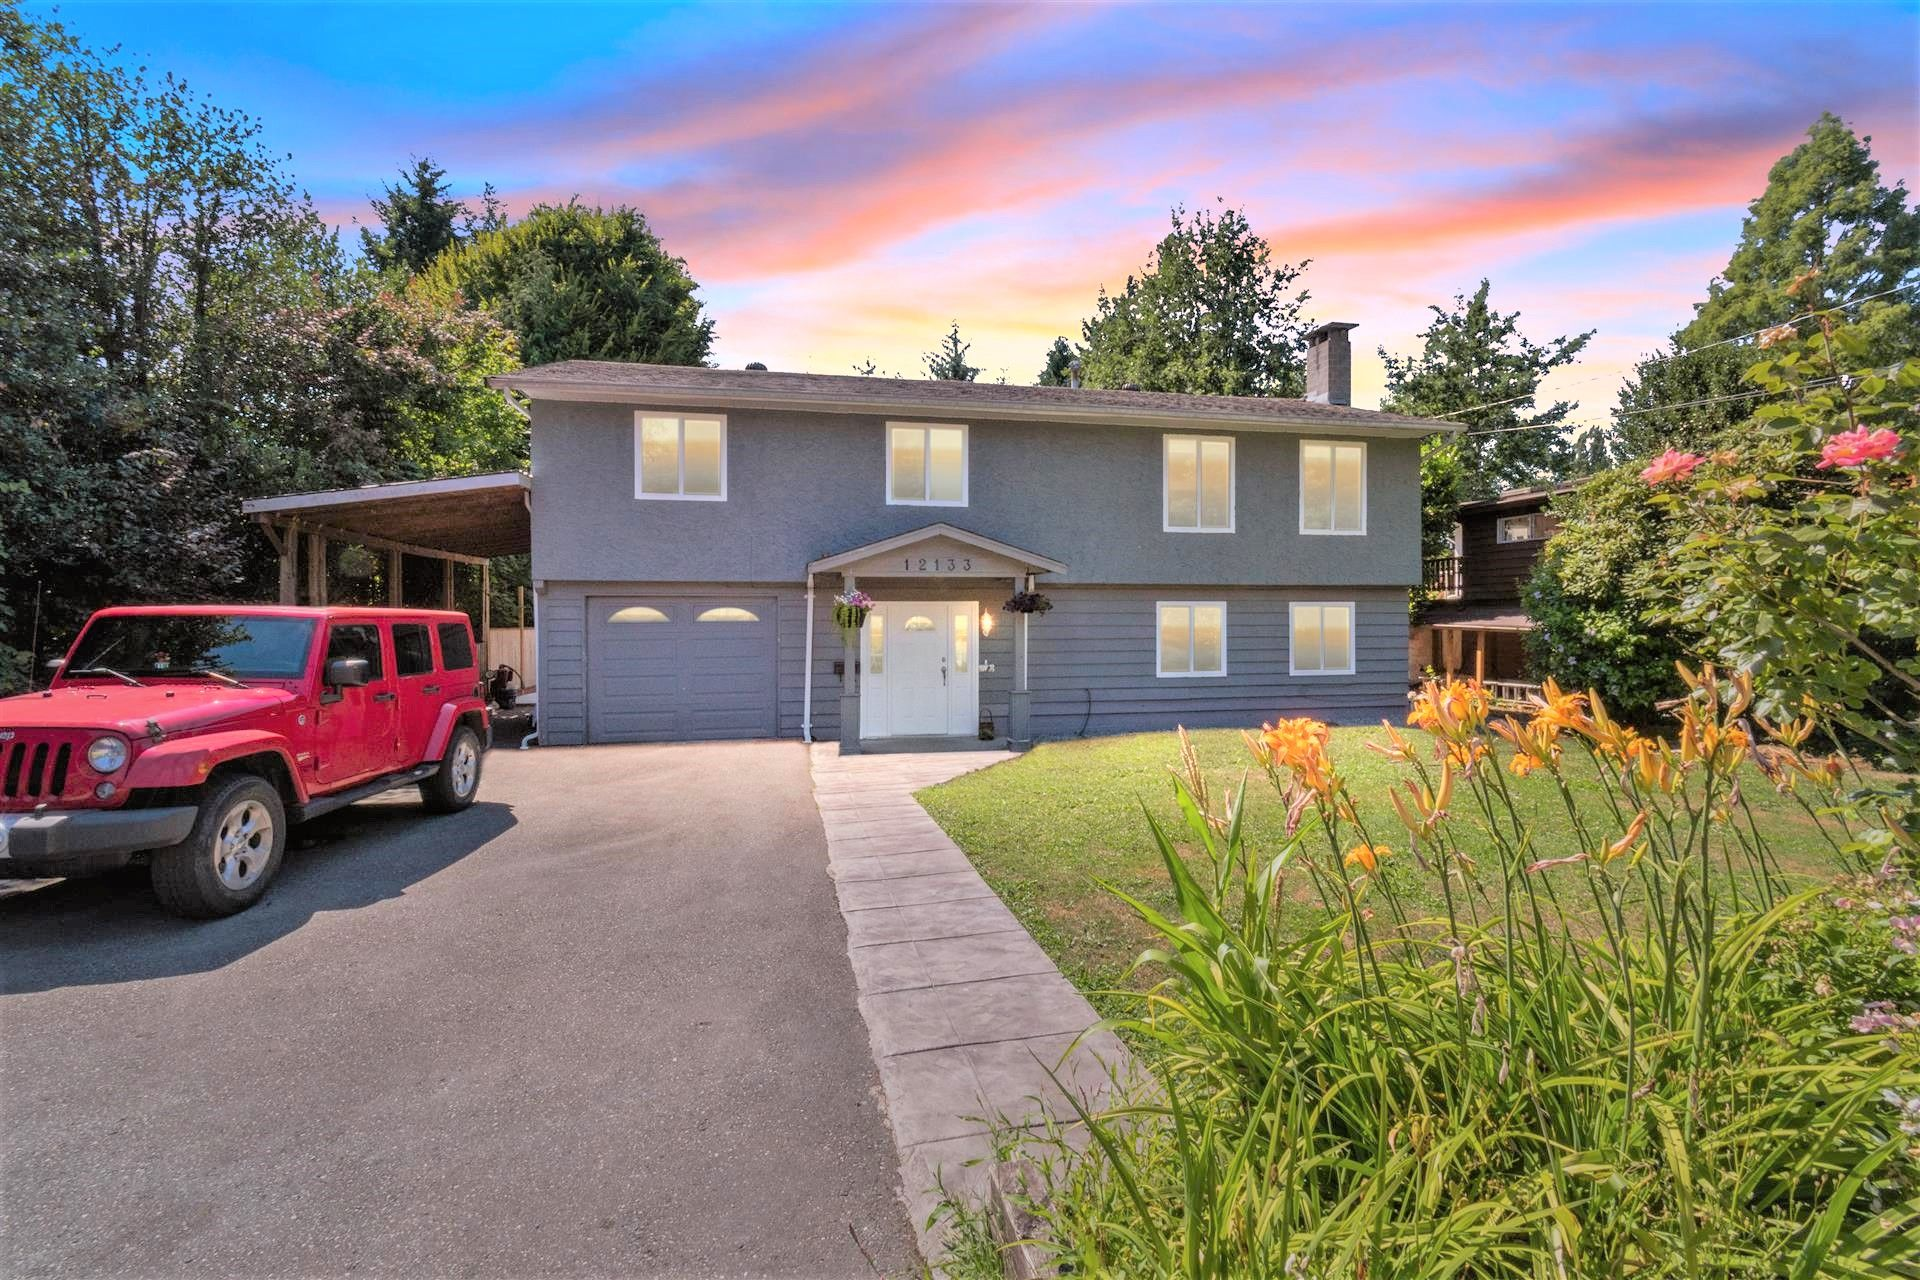 Main Photo: 12133 ACADIA STREET in Maple Ridge: West Central House for sale : MLS®# 2602935